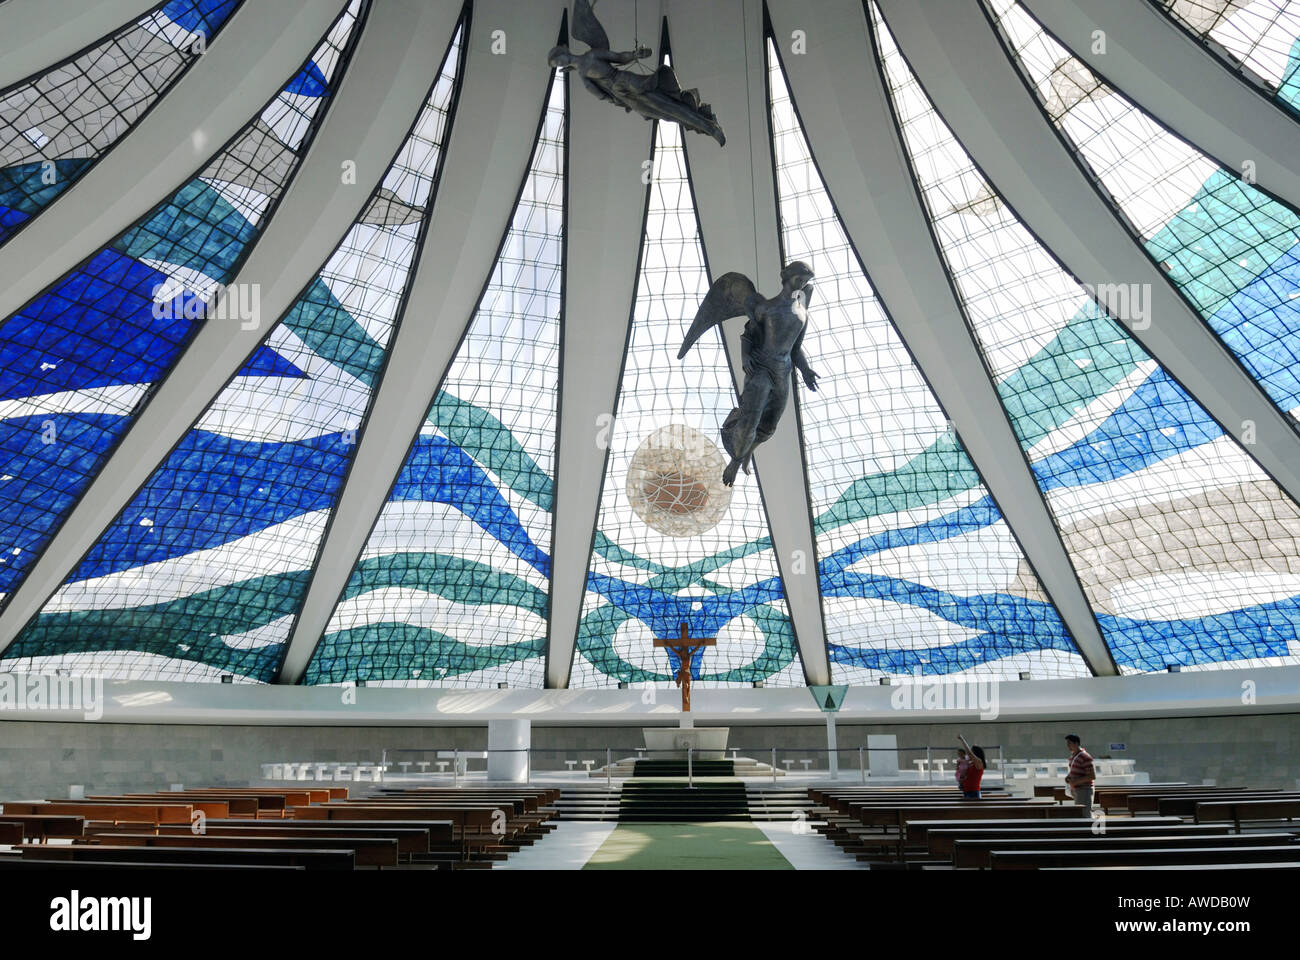 Inside the cathedral 'Nossa senhora da Aparecida', Brasilia, Brazil. Architect: Oscar Niemeyer - Stock Image